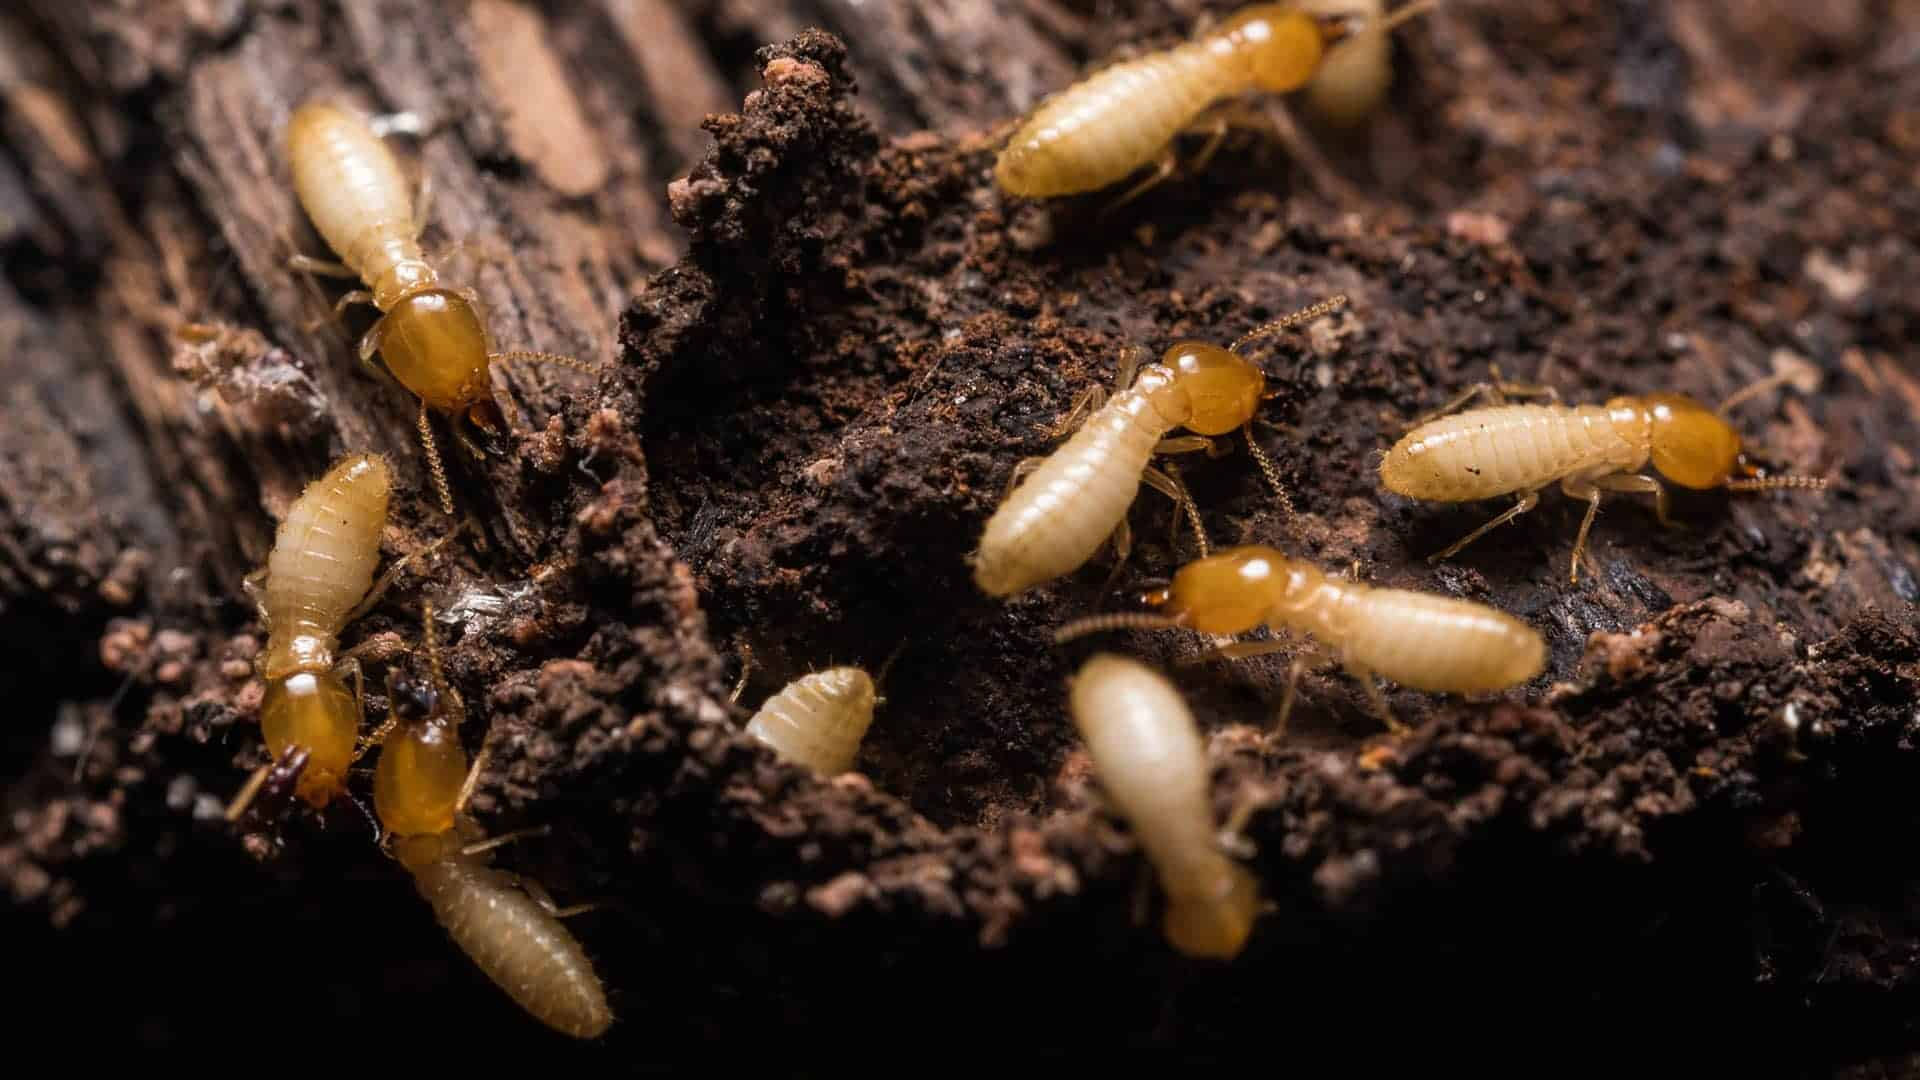 Pest control service Pest control company Termite control service Termite pest control Bed bugs elimination service Bed bugs treatment Bed bugs removal service Cockroach elimination service Disinfection misting service Mosquito fogging service active termites crawling in the soil